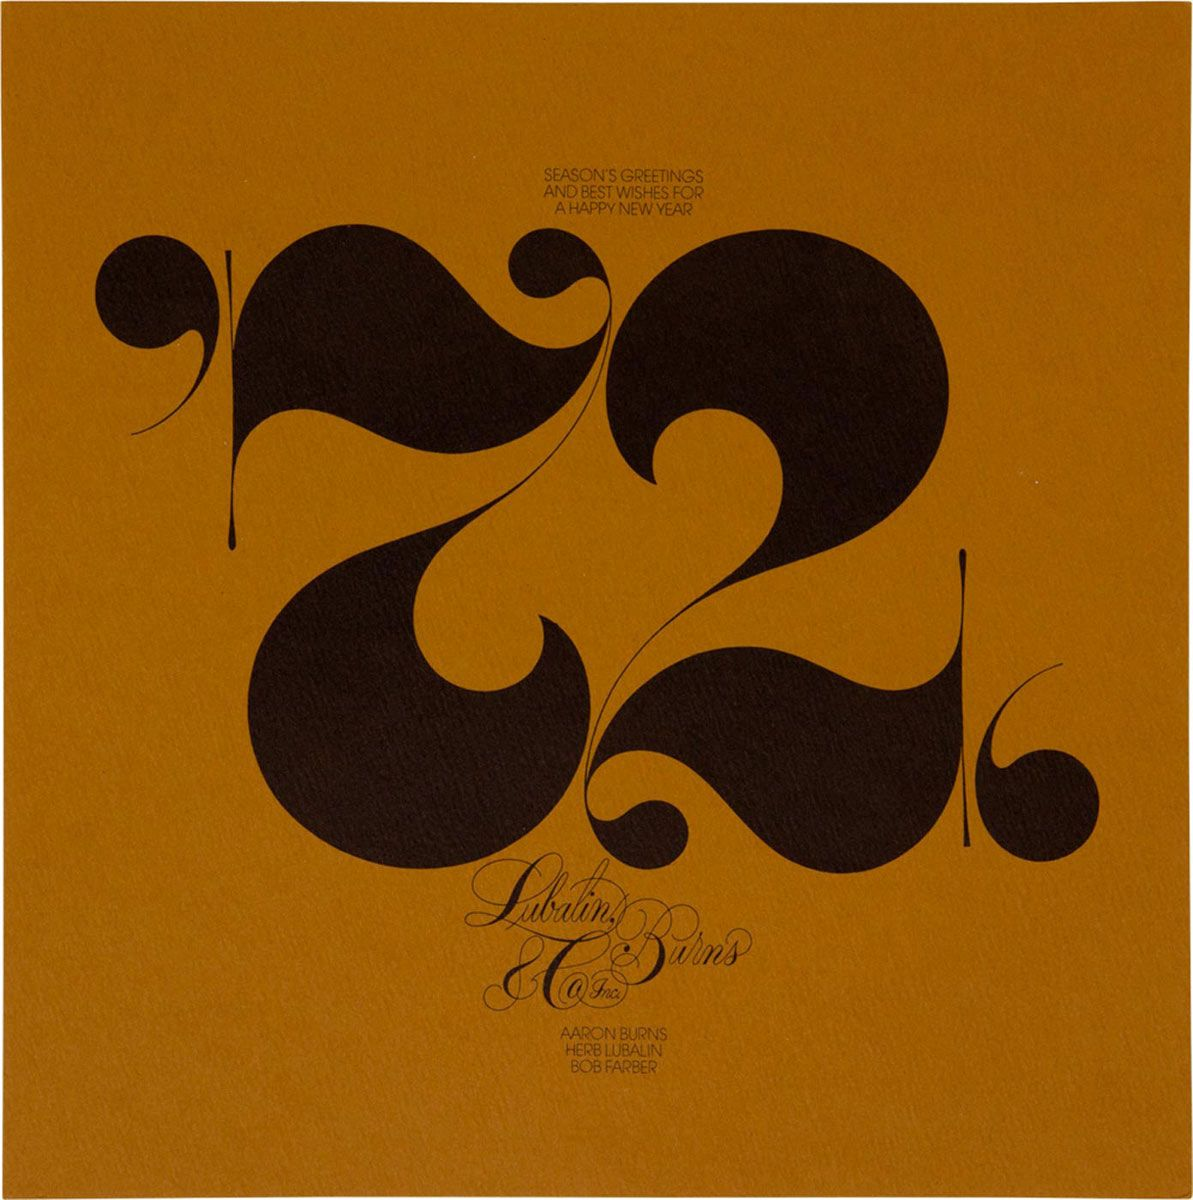 Herb Lubalin Was Controversial at Times, But Always Great